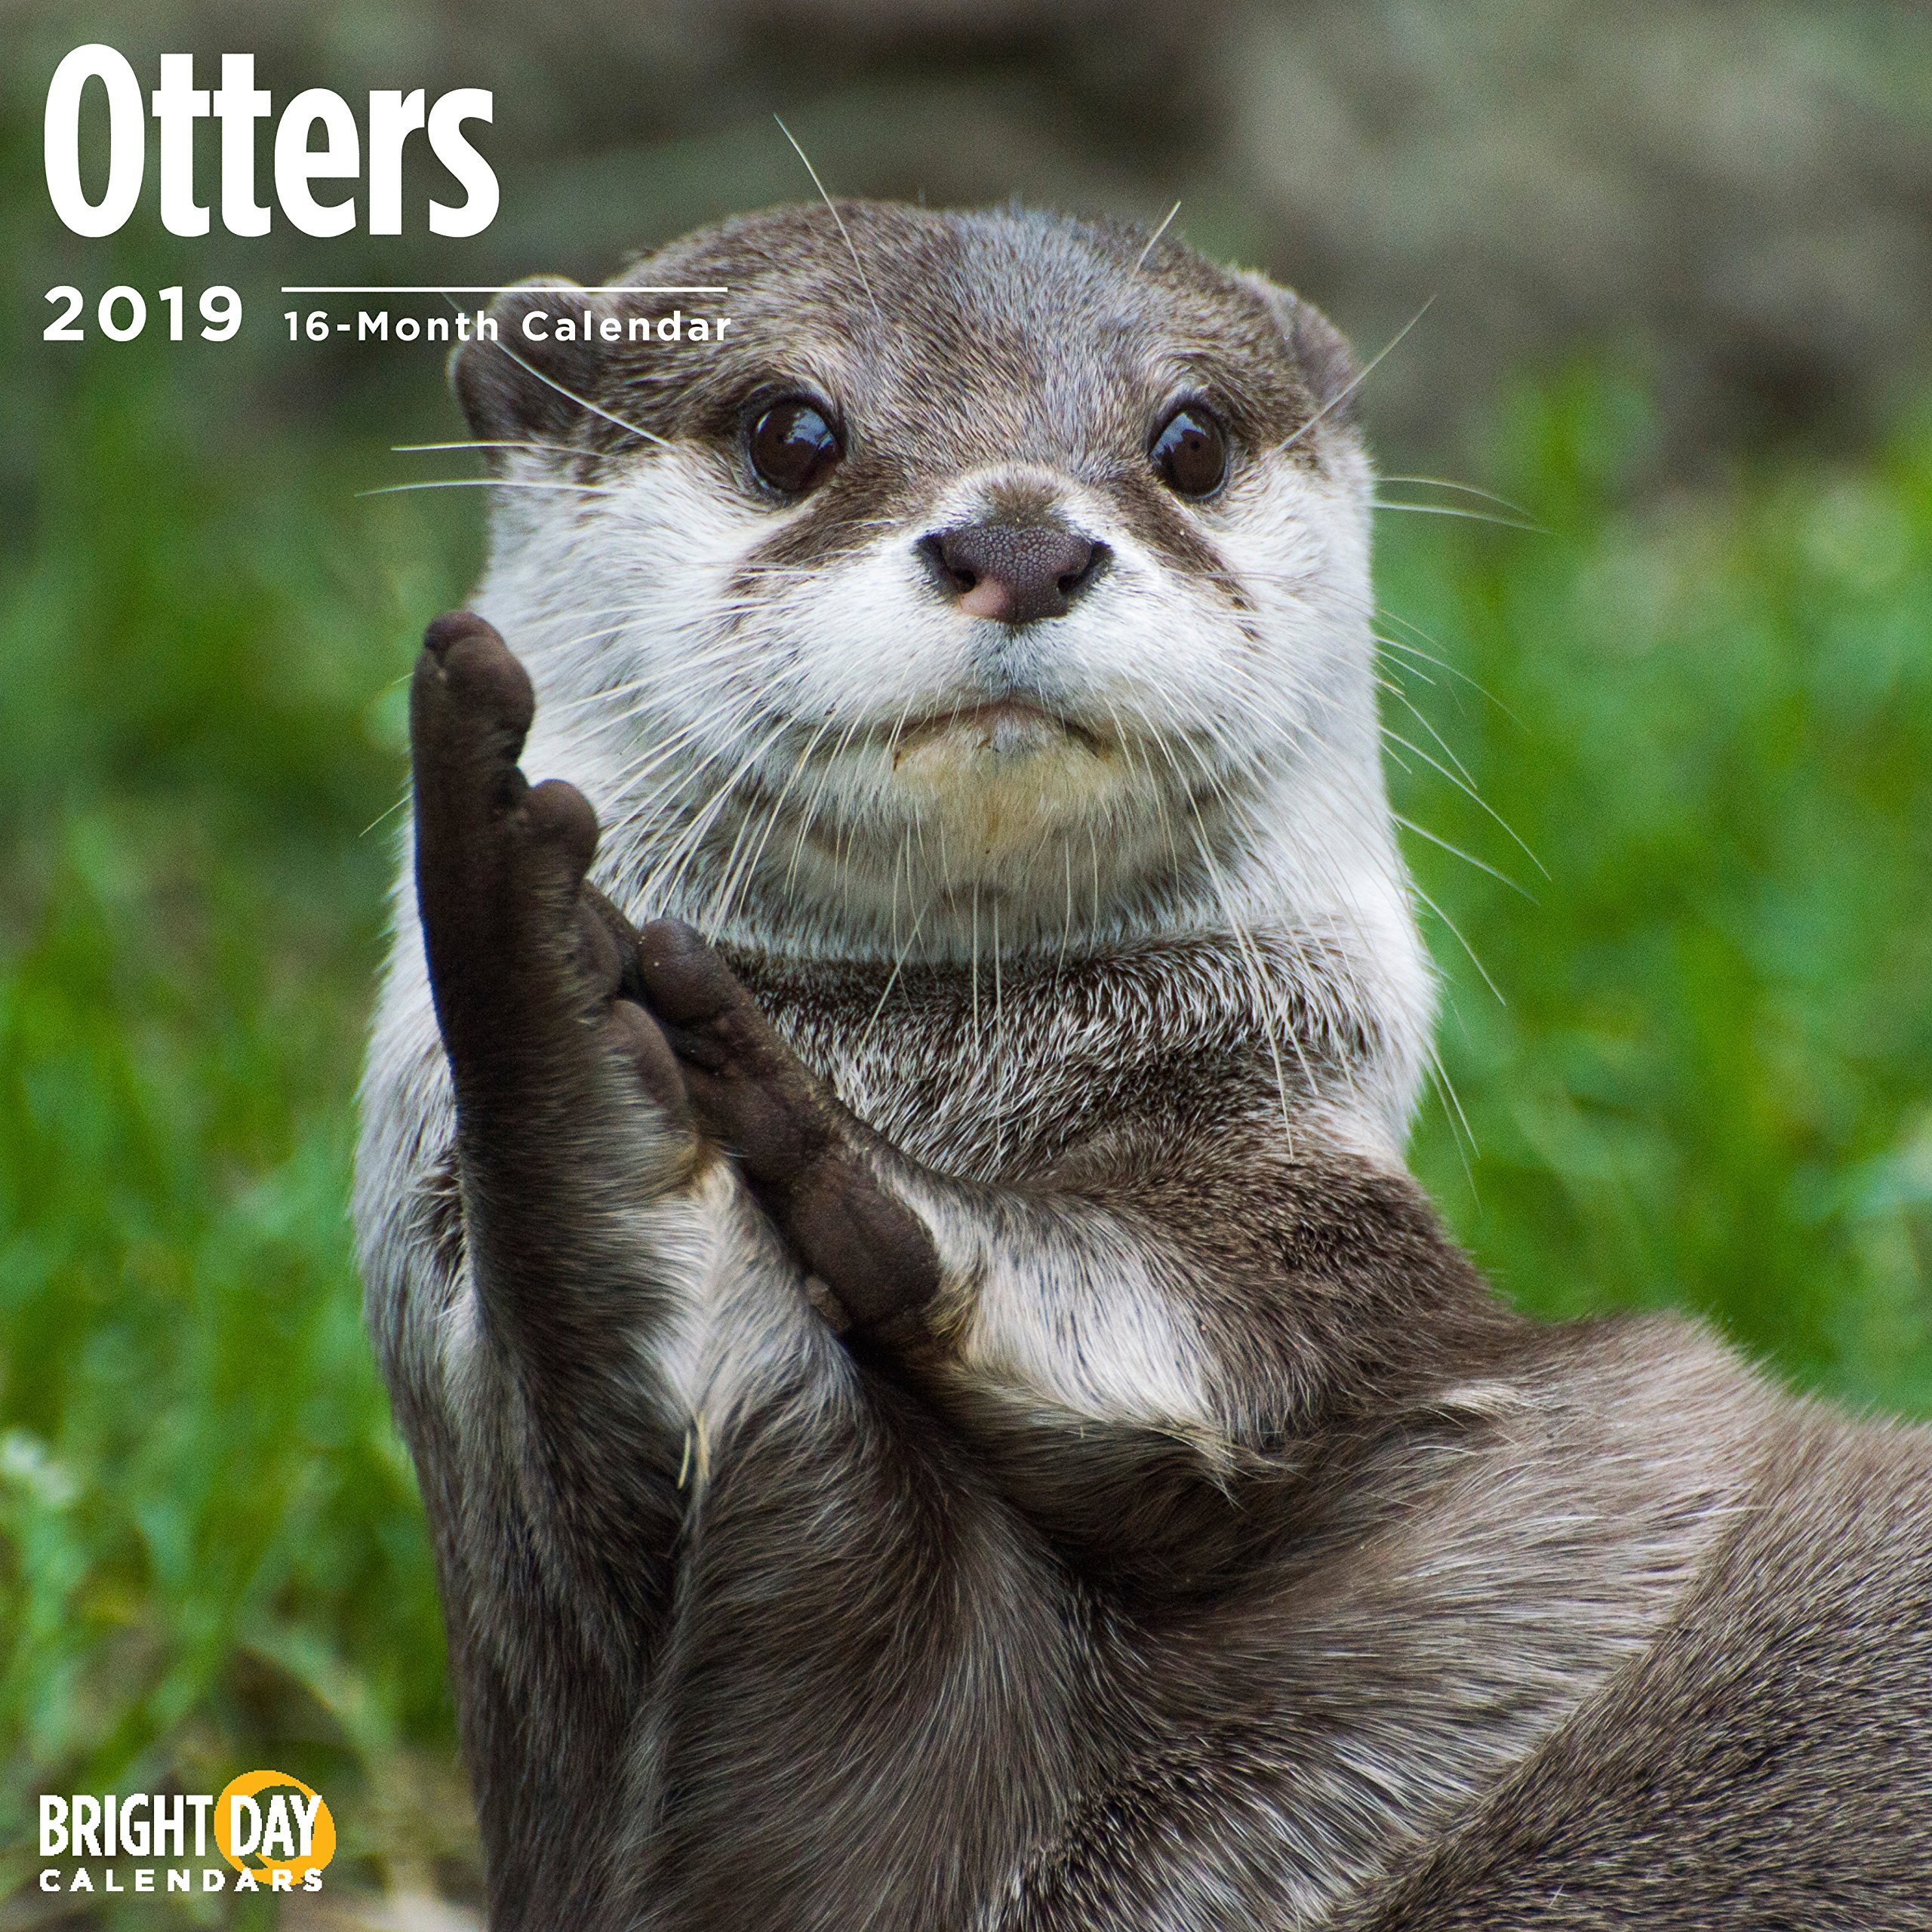 Otters 2019 Wall Calendar 12x12 Inches